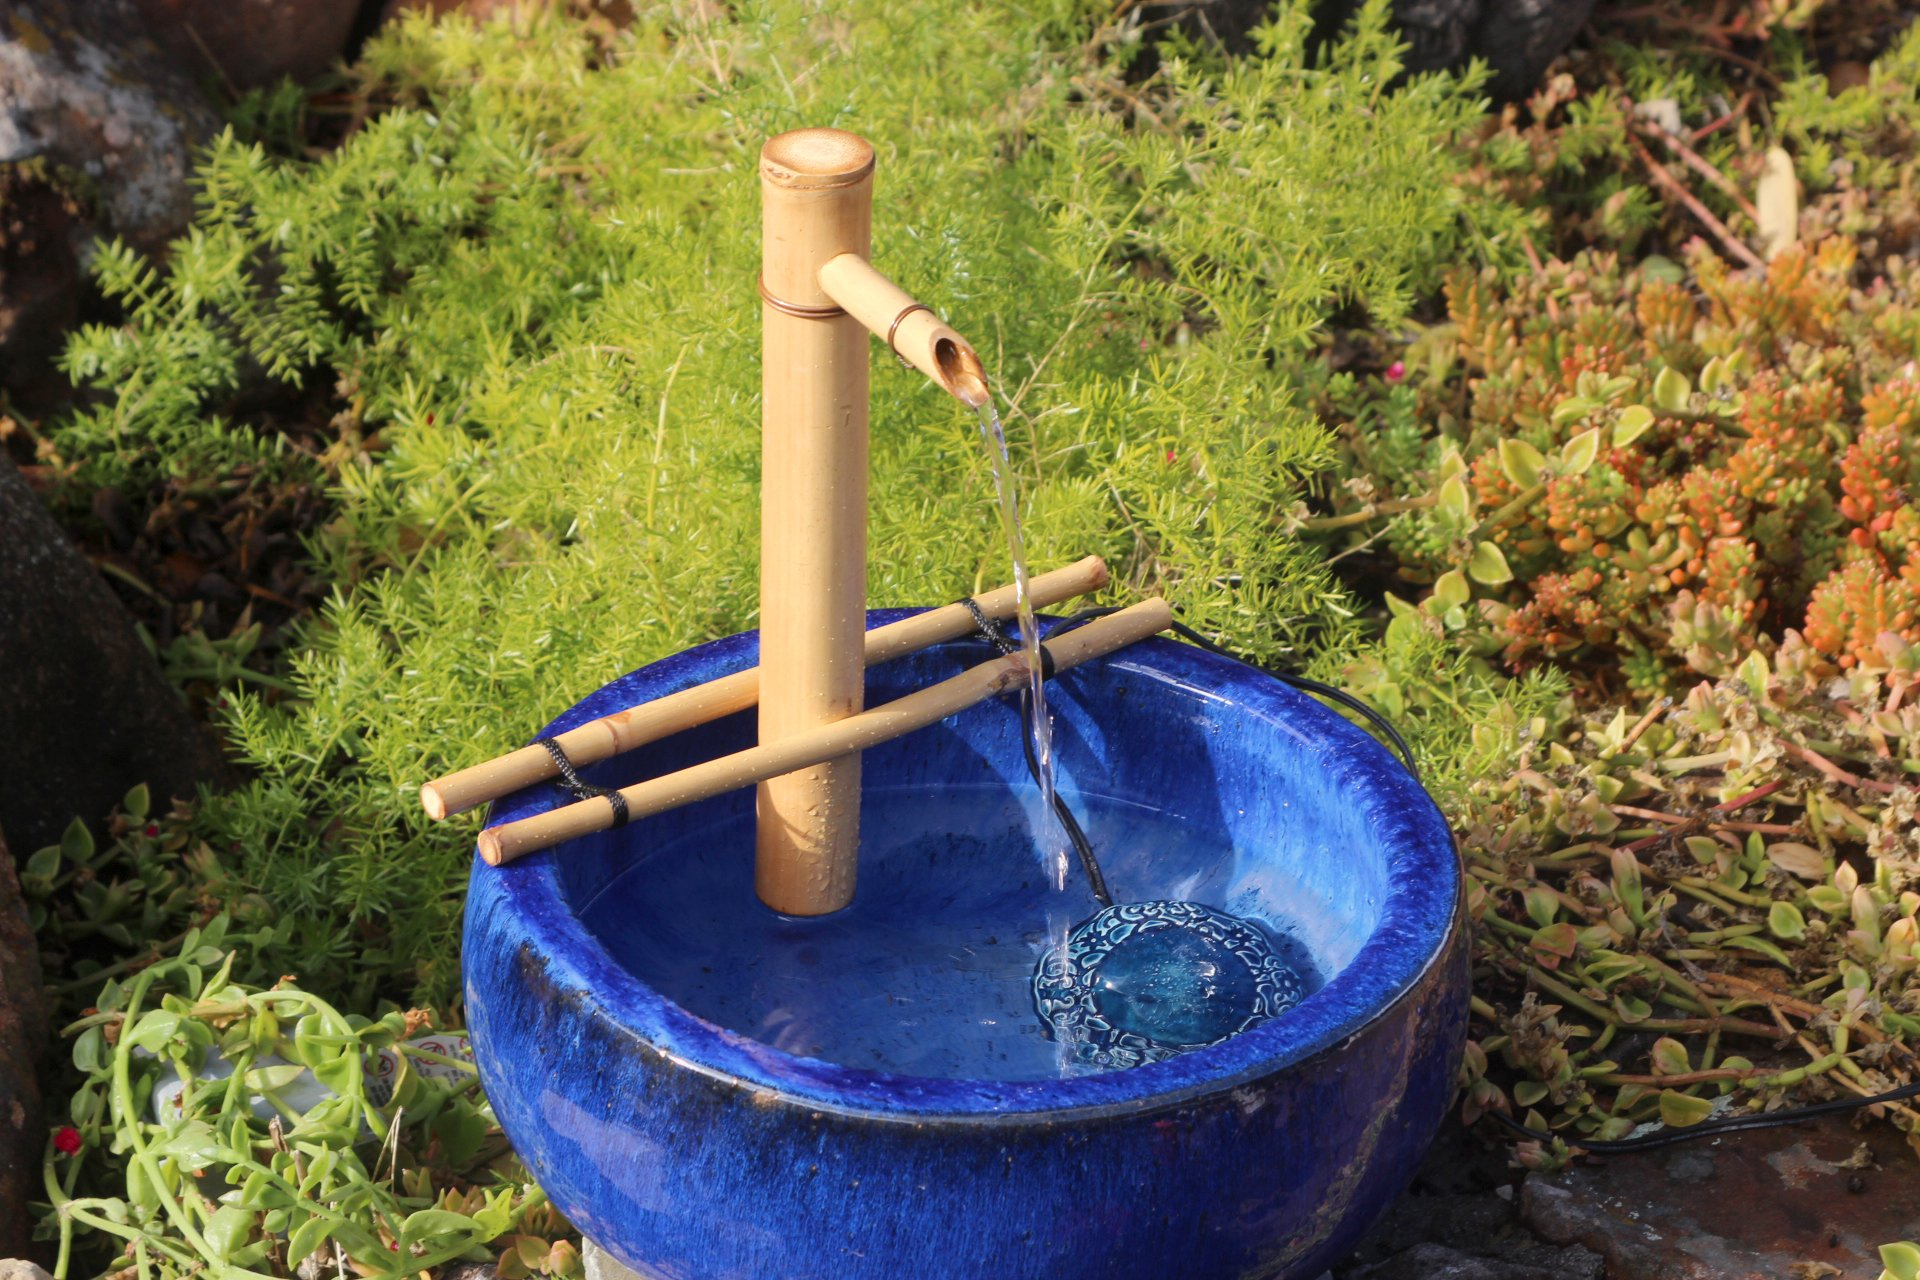 Bamboo Accents Water Fountain & Pump Kit - 12-inch Wide, Adjustable Branch Style Support, Split-Resistant Bamboo – DIY… - CREATE A SERENE OASIS: Customize this adjustable height water fountain to create the look and sound you desire; Simple raise up to create a cascading and vibrant waterfall, or lower for a soothing placid flow indoors or outdoors (Bowl not included) CUSTOMIZE YOUR FENG SHUI LOOK: Turn a quiet place into a personal sanctuary by transforming your own pottery bowl, planter, basin or ceramic pot into a beautiful Zen Garden with smooth sounds of flowing water to soothe your senses ELECTRIC PUMP INCLUDED: USA-standard 110-Volt pump that's strong and quiet; submerge directly in the water and hide with decorative flowers or rocks; for European standard 220- Volt pumps, please purchase Amazon ASIN: B073SBN4GZ - patio, outdoor-decor, fountains - 81JgzMdYzyL -